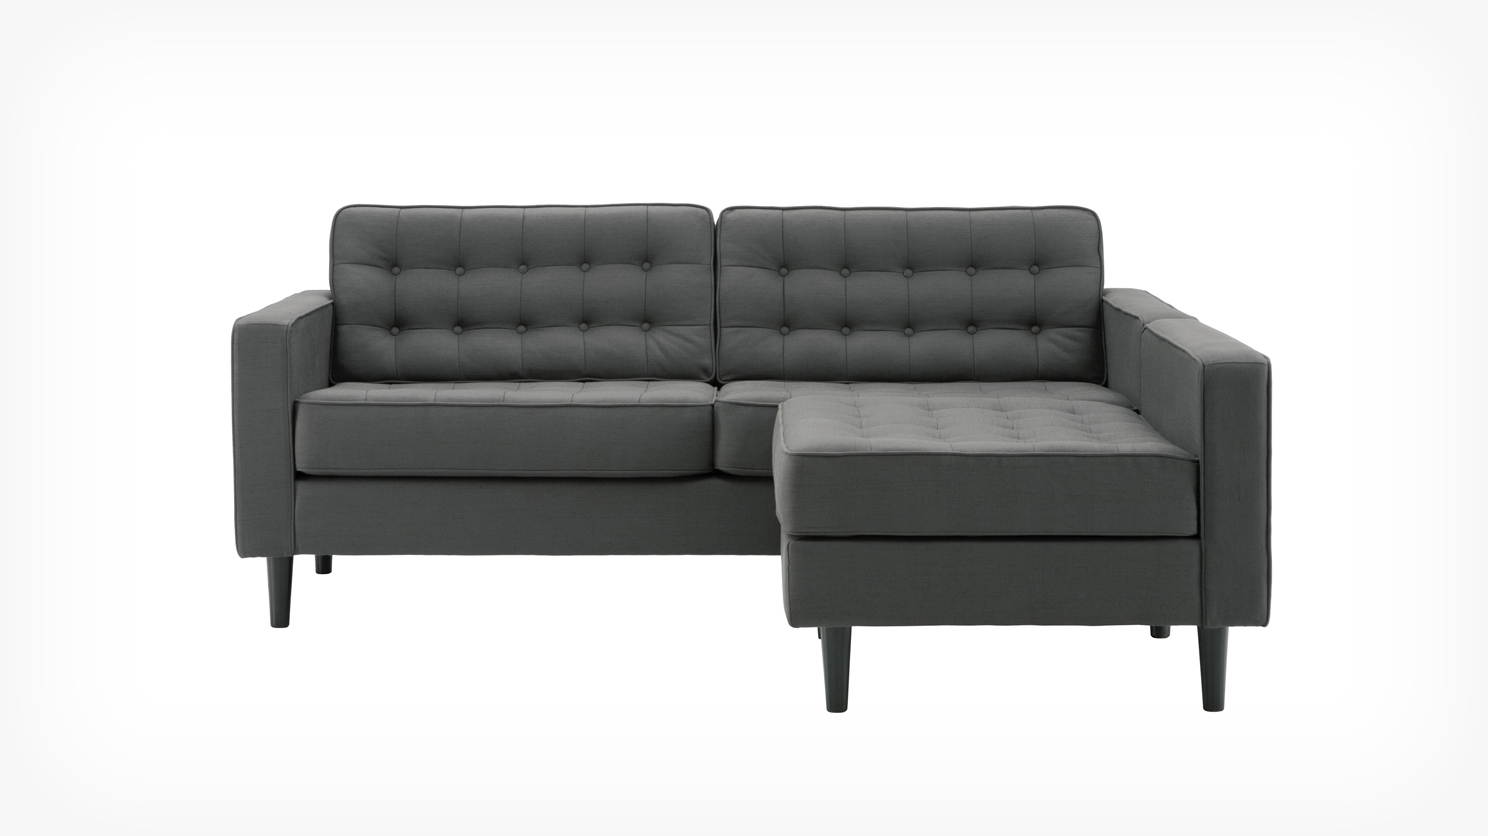 Eq3 | Reverie Apartment 2 Piece Sectional Sofa With Chaise – Fabric Intended For Eq3 Sectional Sofas (View 2 of 10)